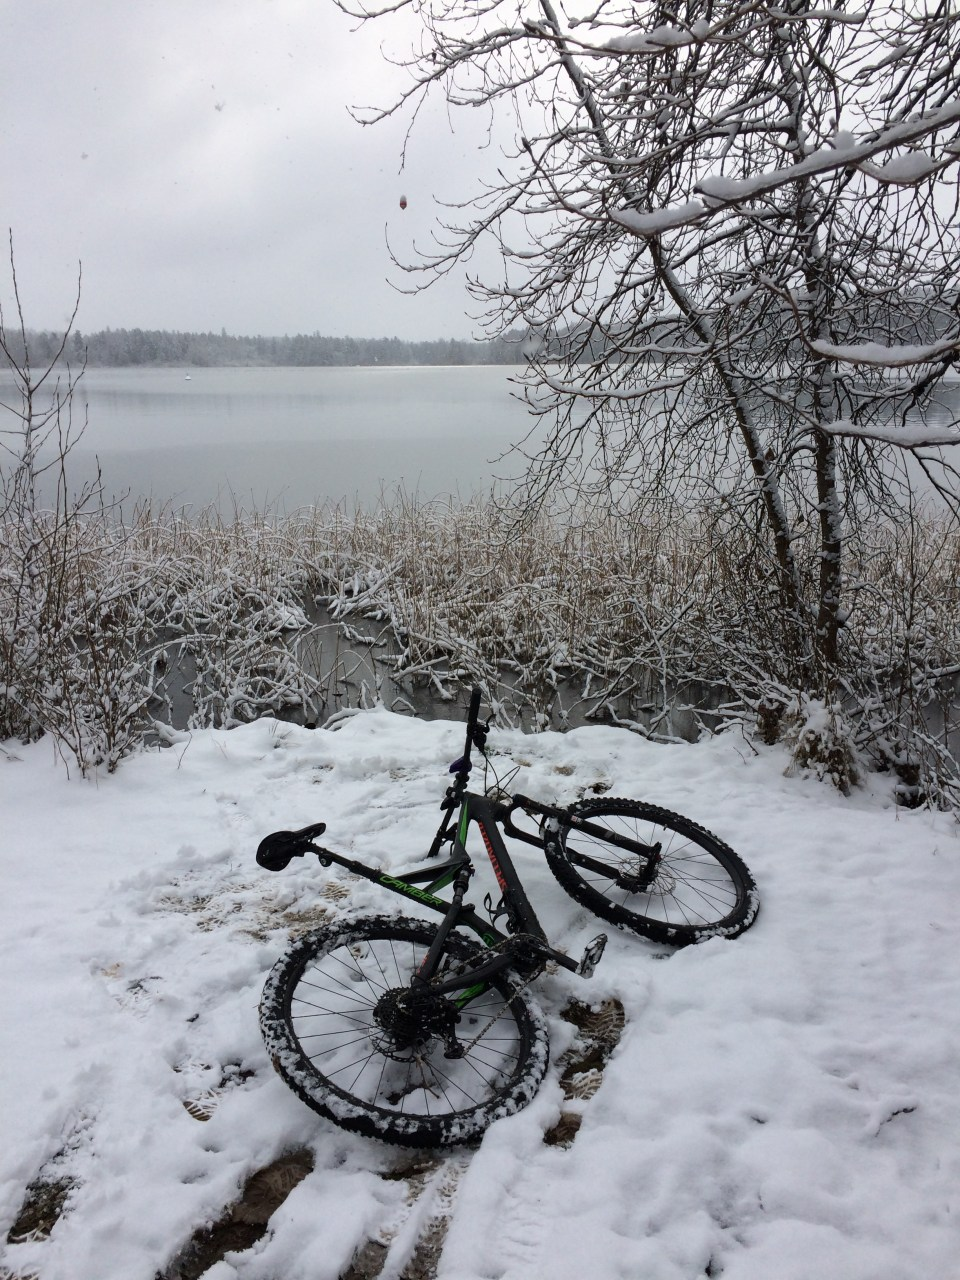 elk-lake-victoria-snow-feb-6th-2017-kevin-light-photo-12